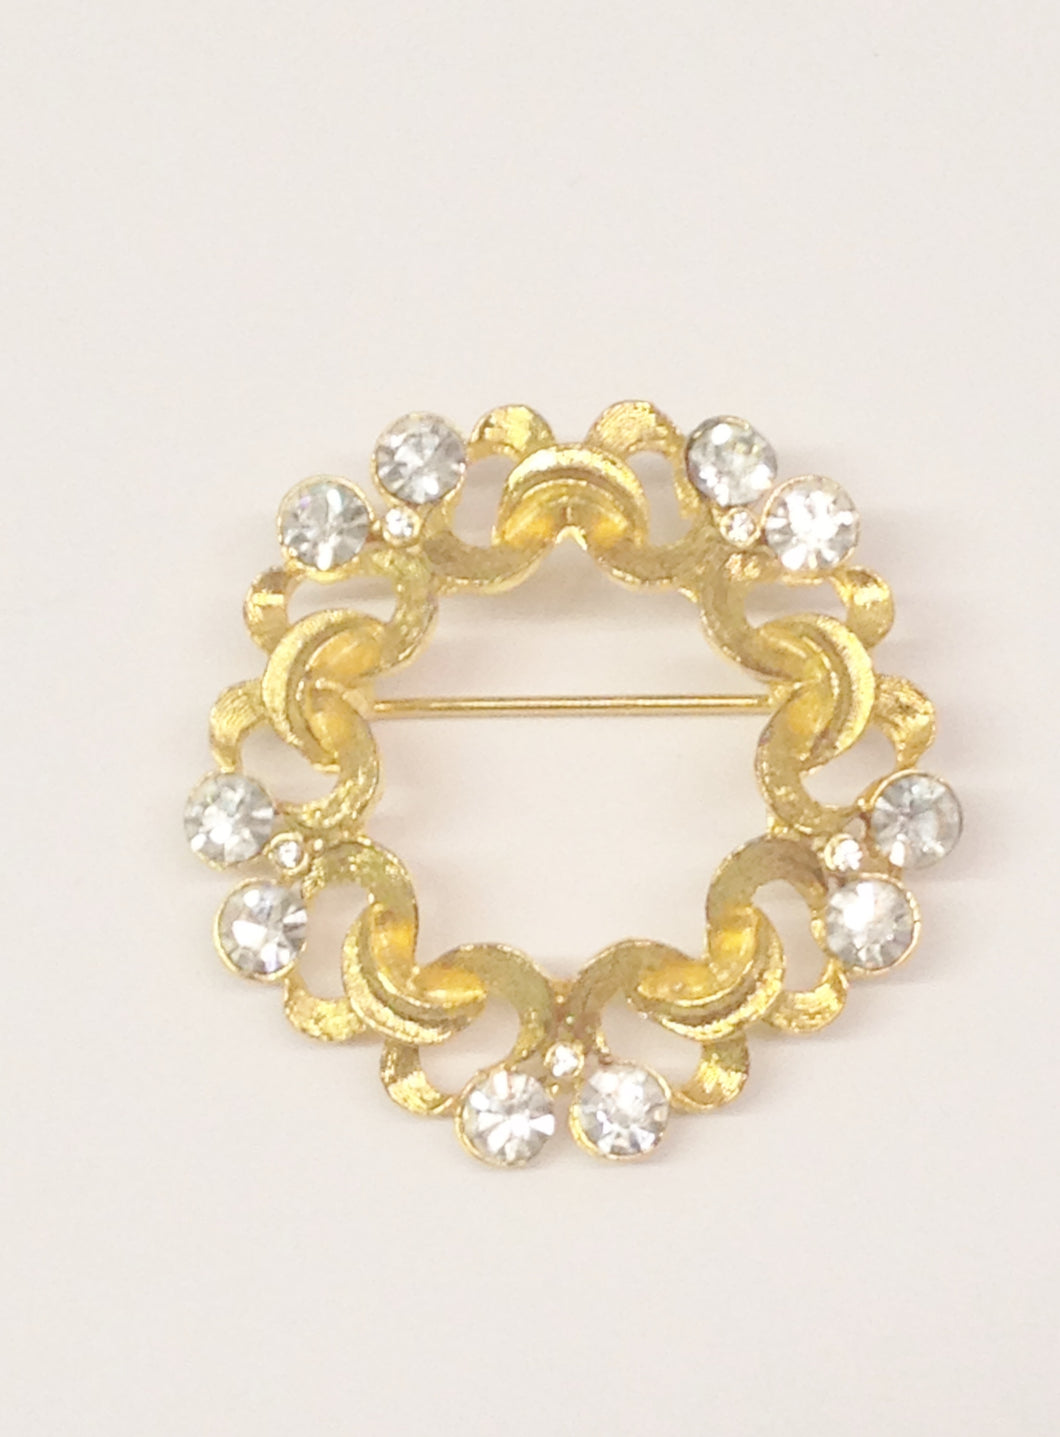 Gold Toned and Clear Rhinestone Round Brooch Pin www.hersandhistreasures.com